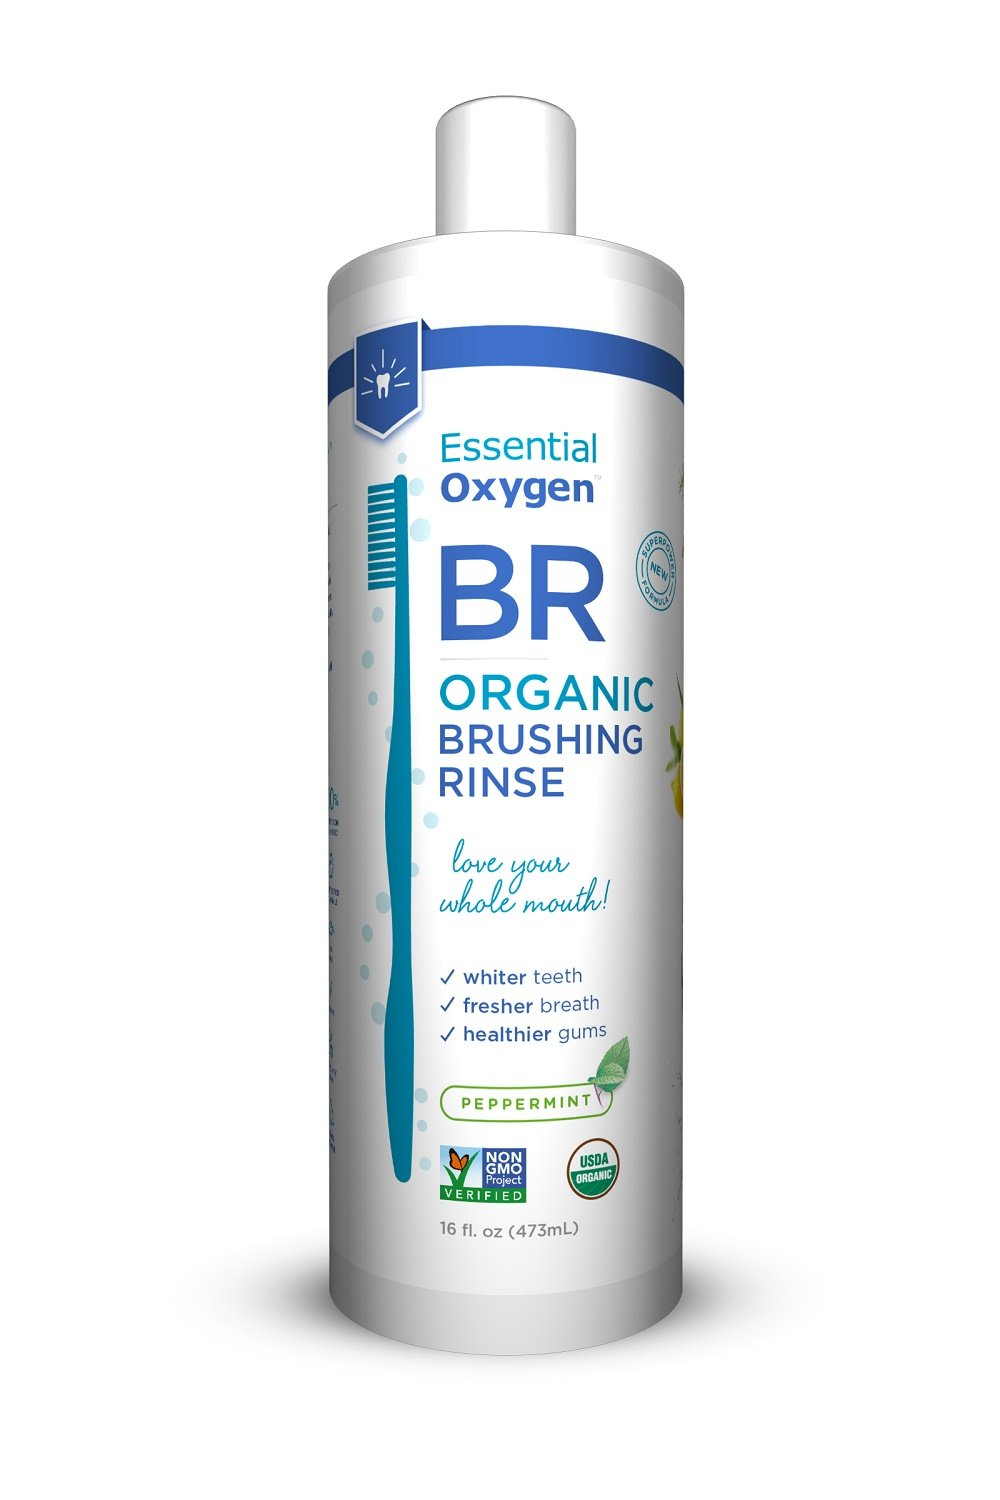 Essential Oxygen Organic Brushing Rinse Toothpaste Mouthwash for Whiter Teeth, Fresher Breath, and Healthier Gums, Peppermint 16 fl. oz S0565820N